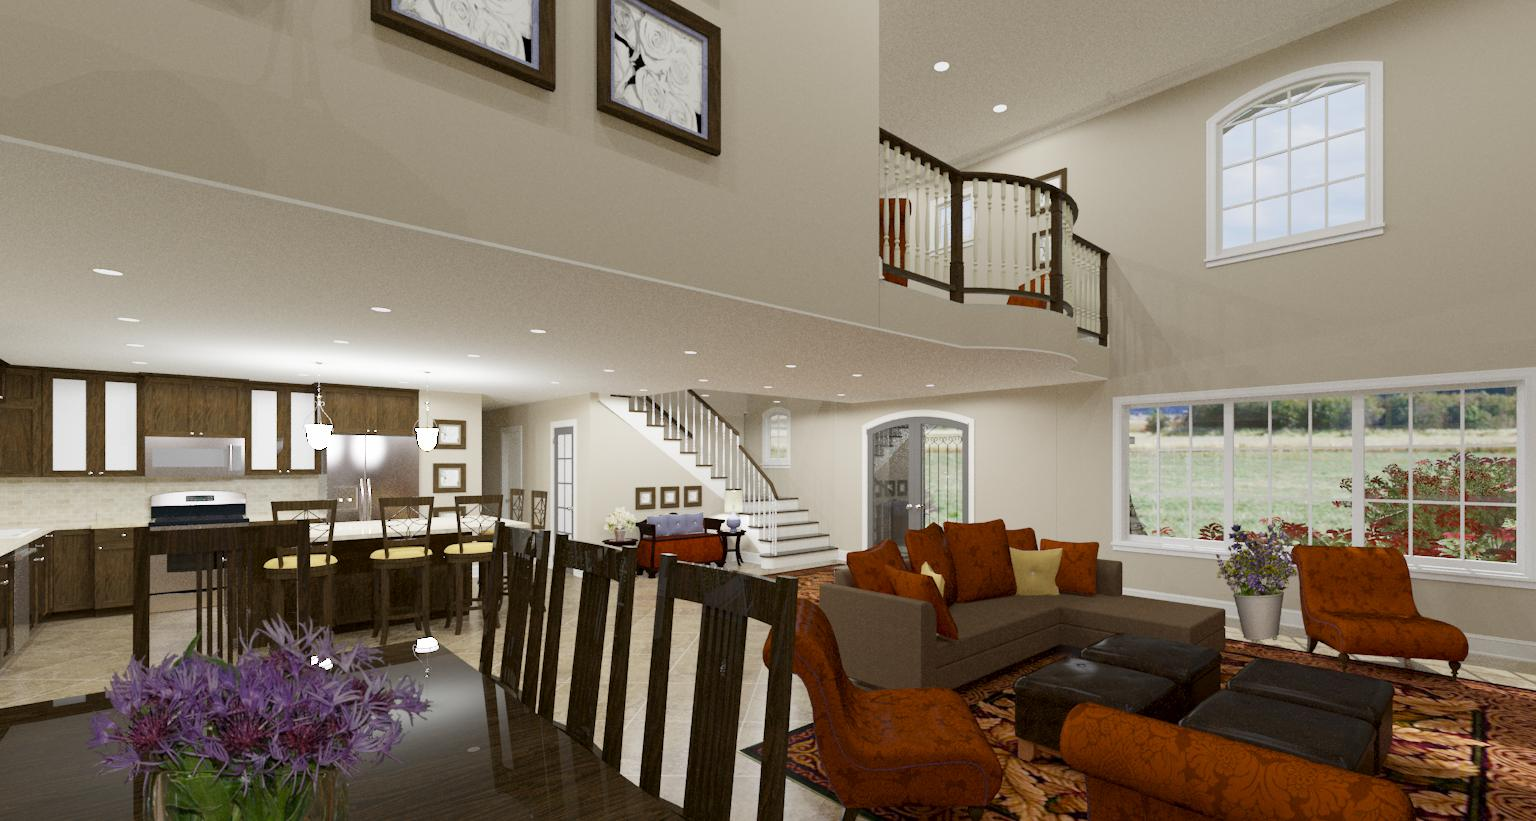 2nd Story San Diego 3D Modeling